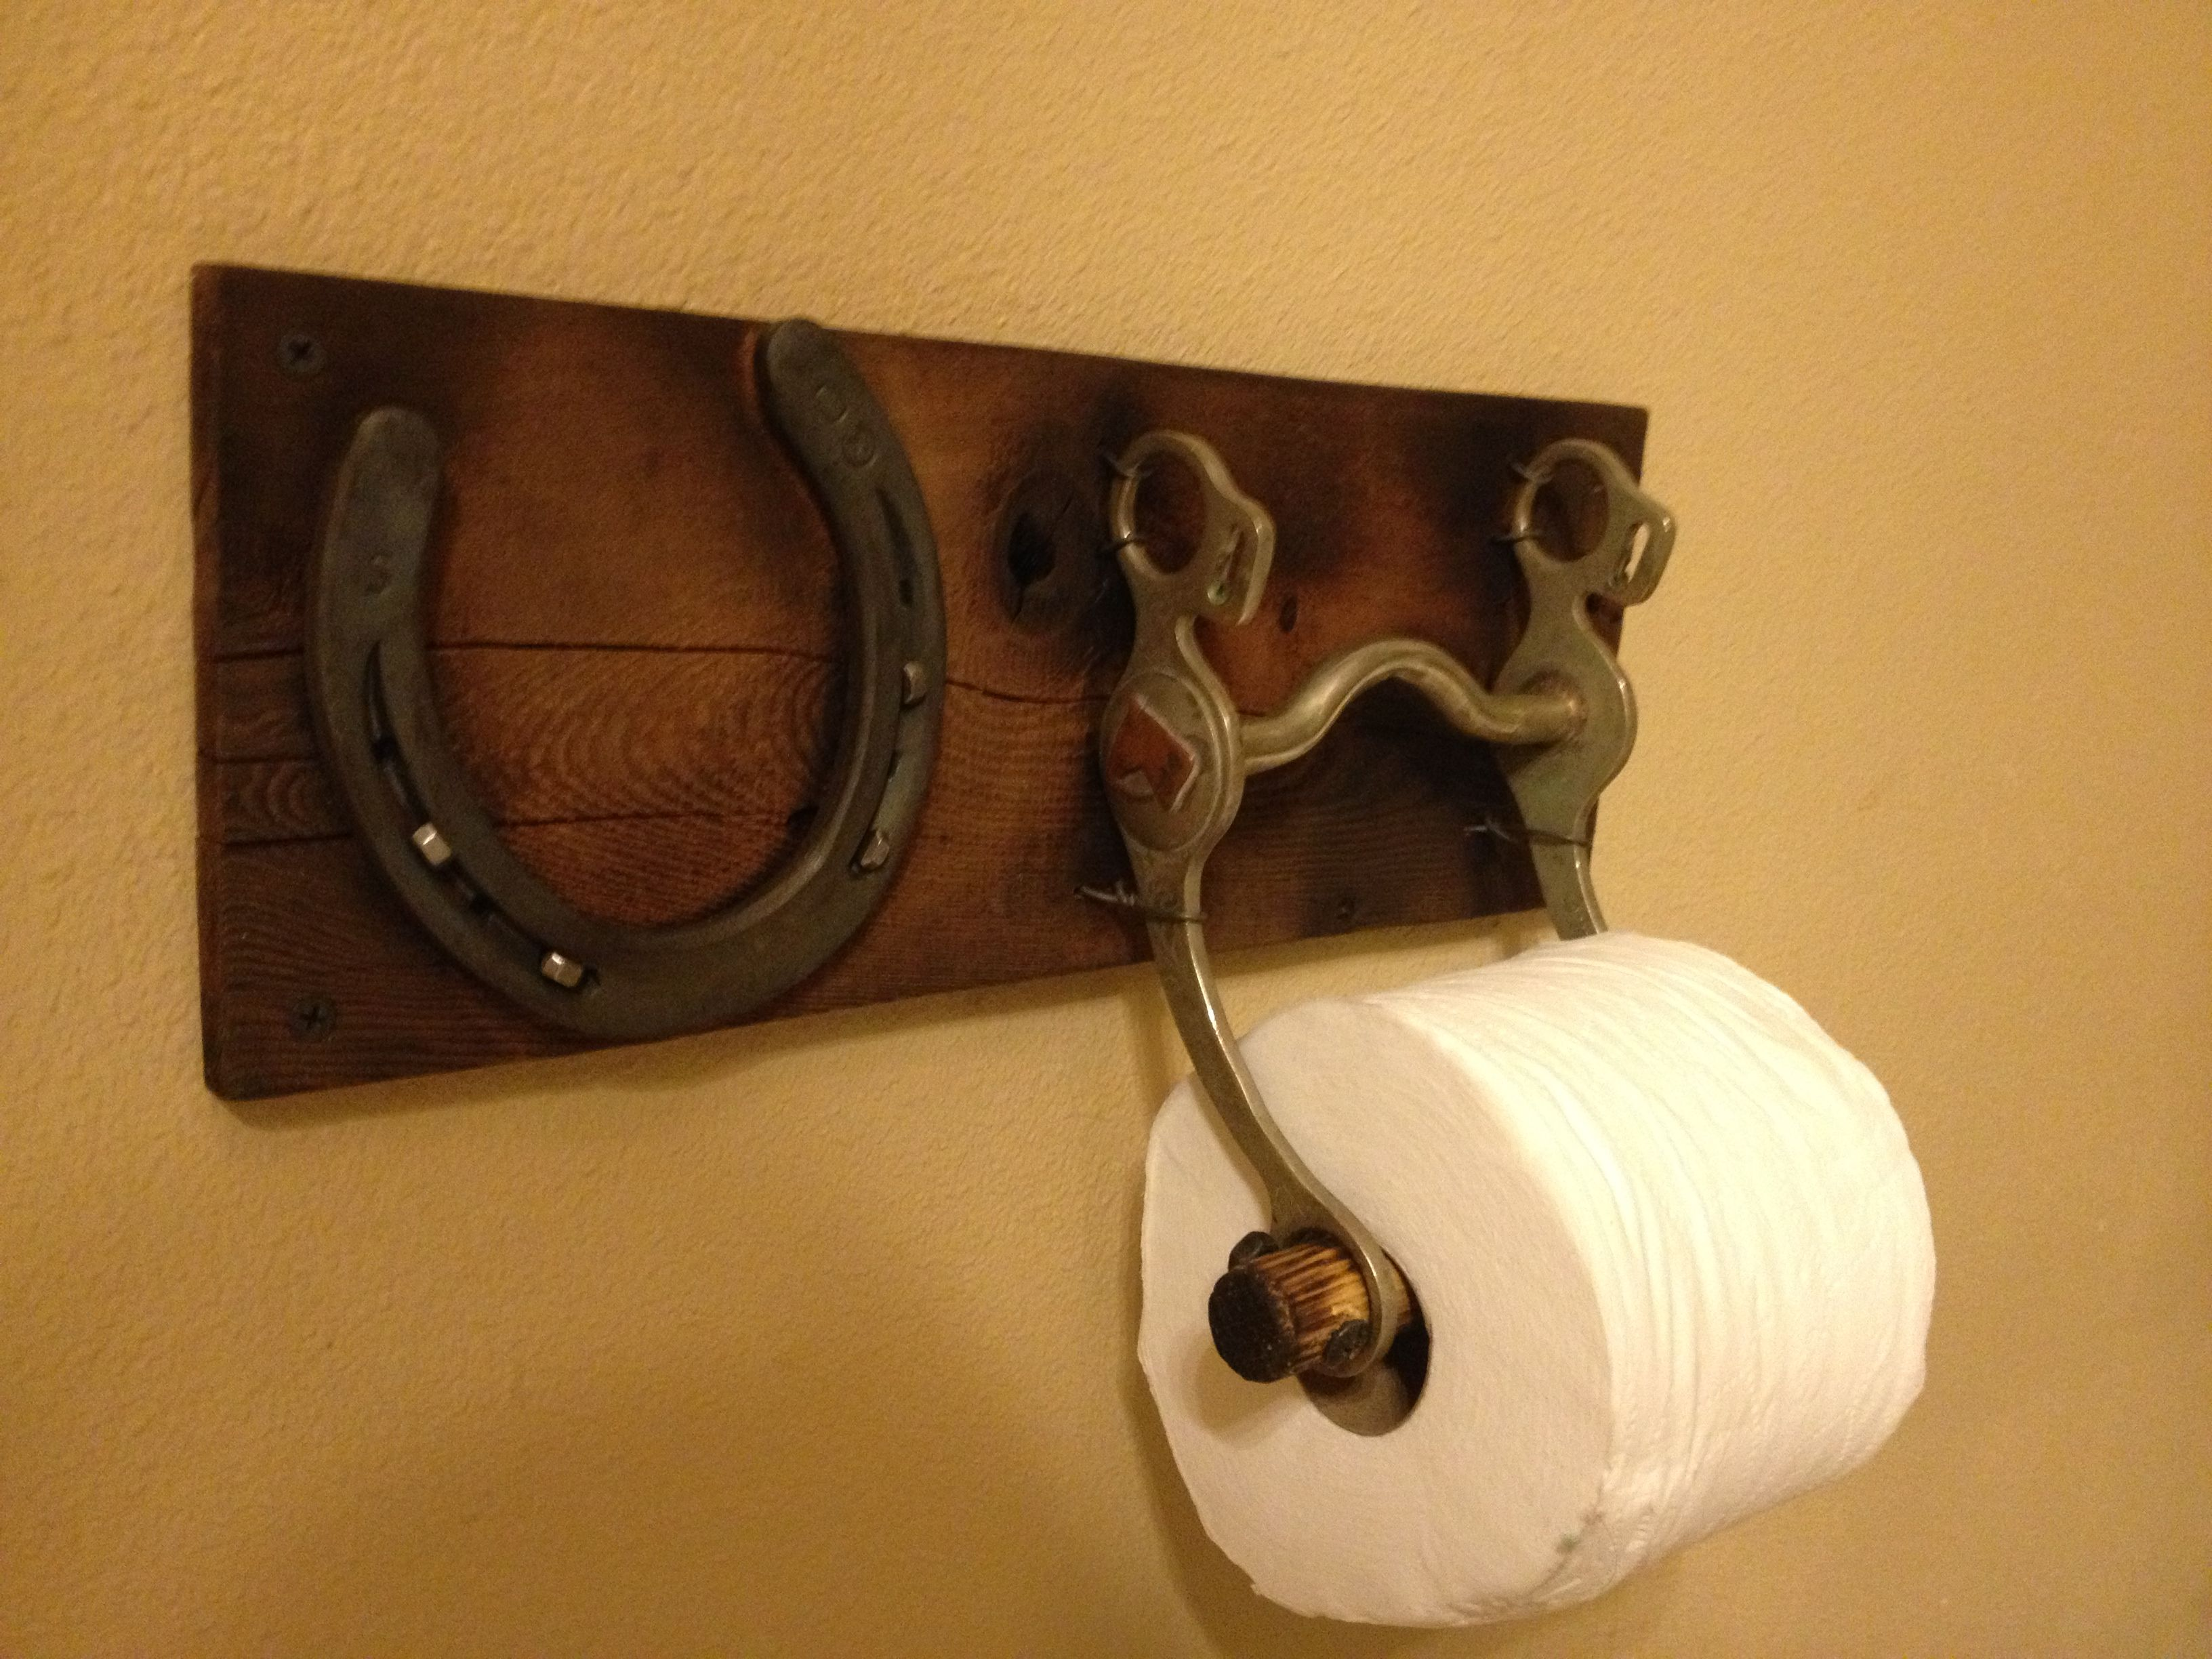 Toilet Paper Holder With An Old Horse Bit And Horse Shoe - Bathroom towel bars and toilet paper holders for bathroom decor ideas